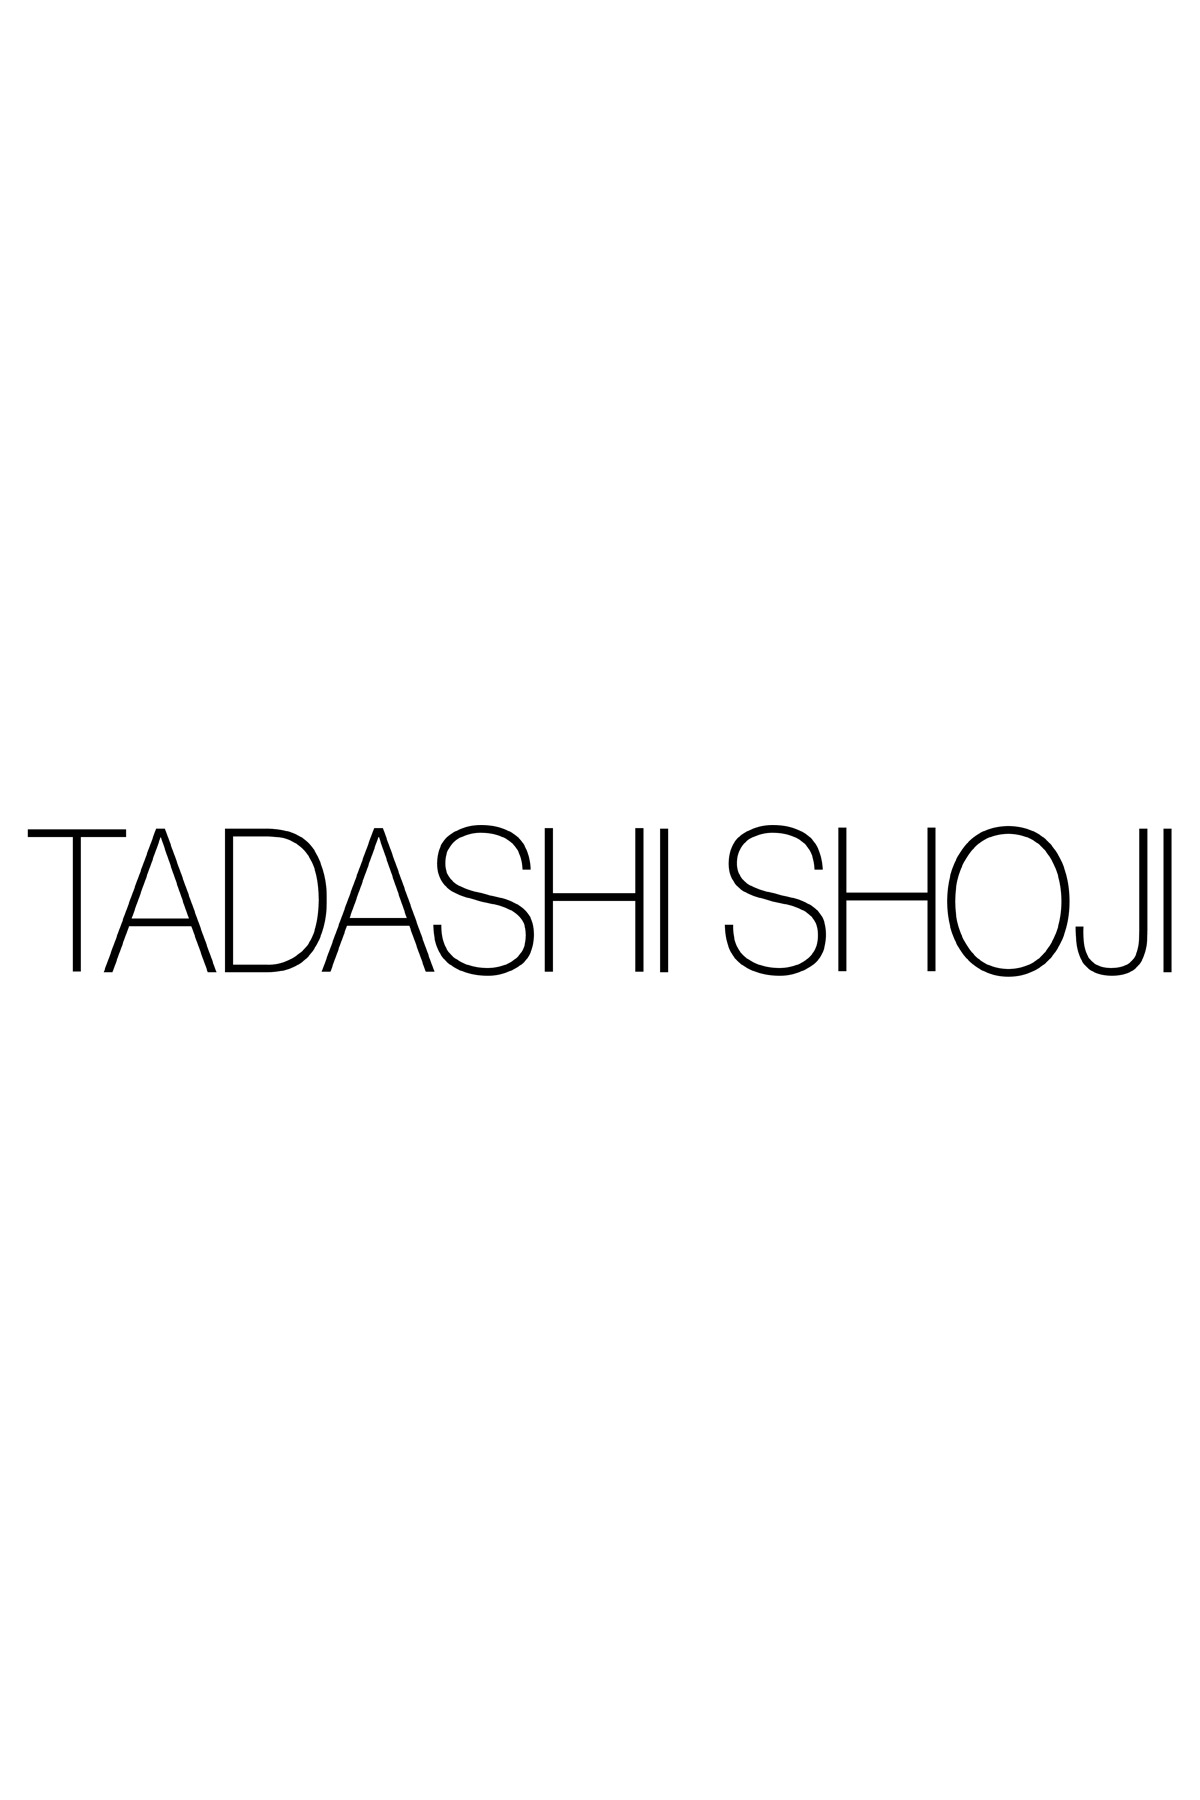 Tadashi Shoji - Evka Lace Embroidered Dress - PLUS SIZE